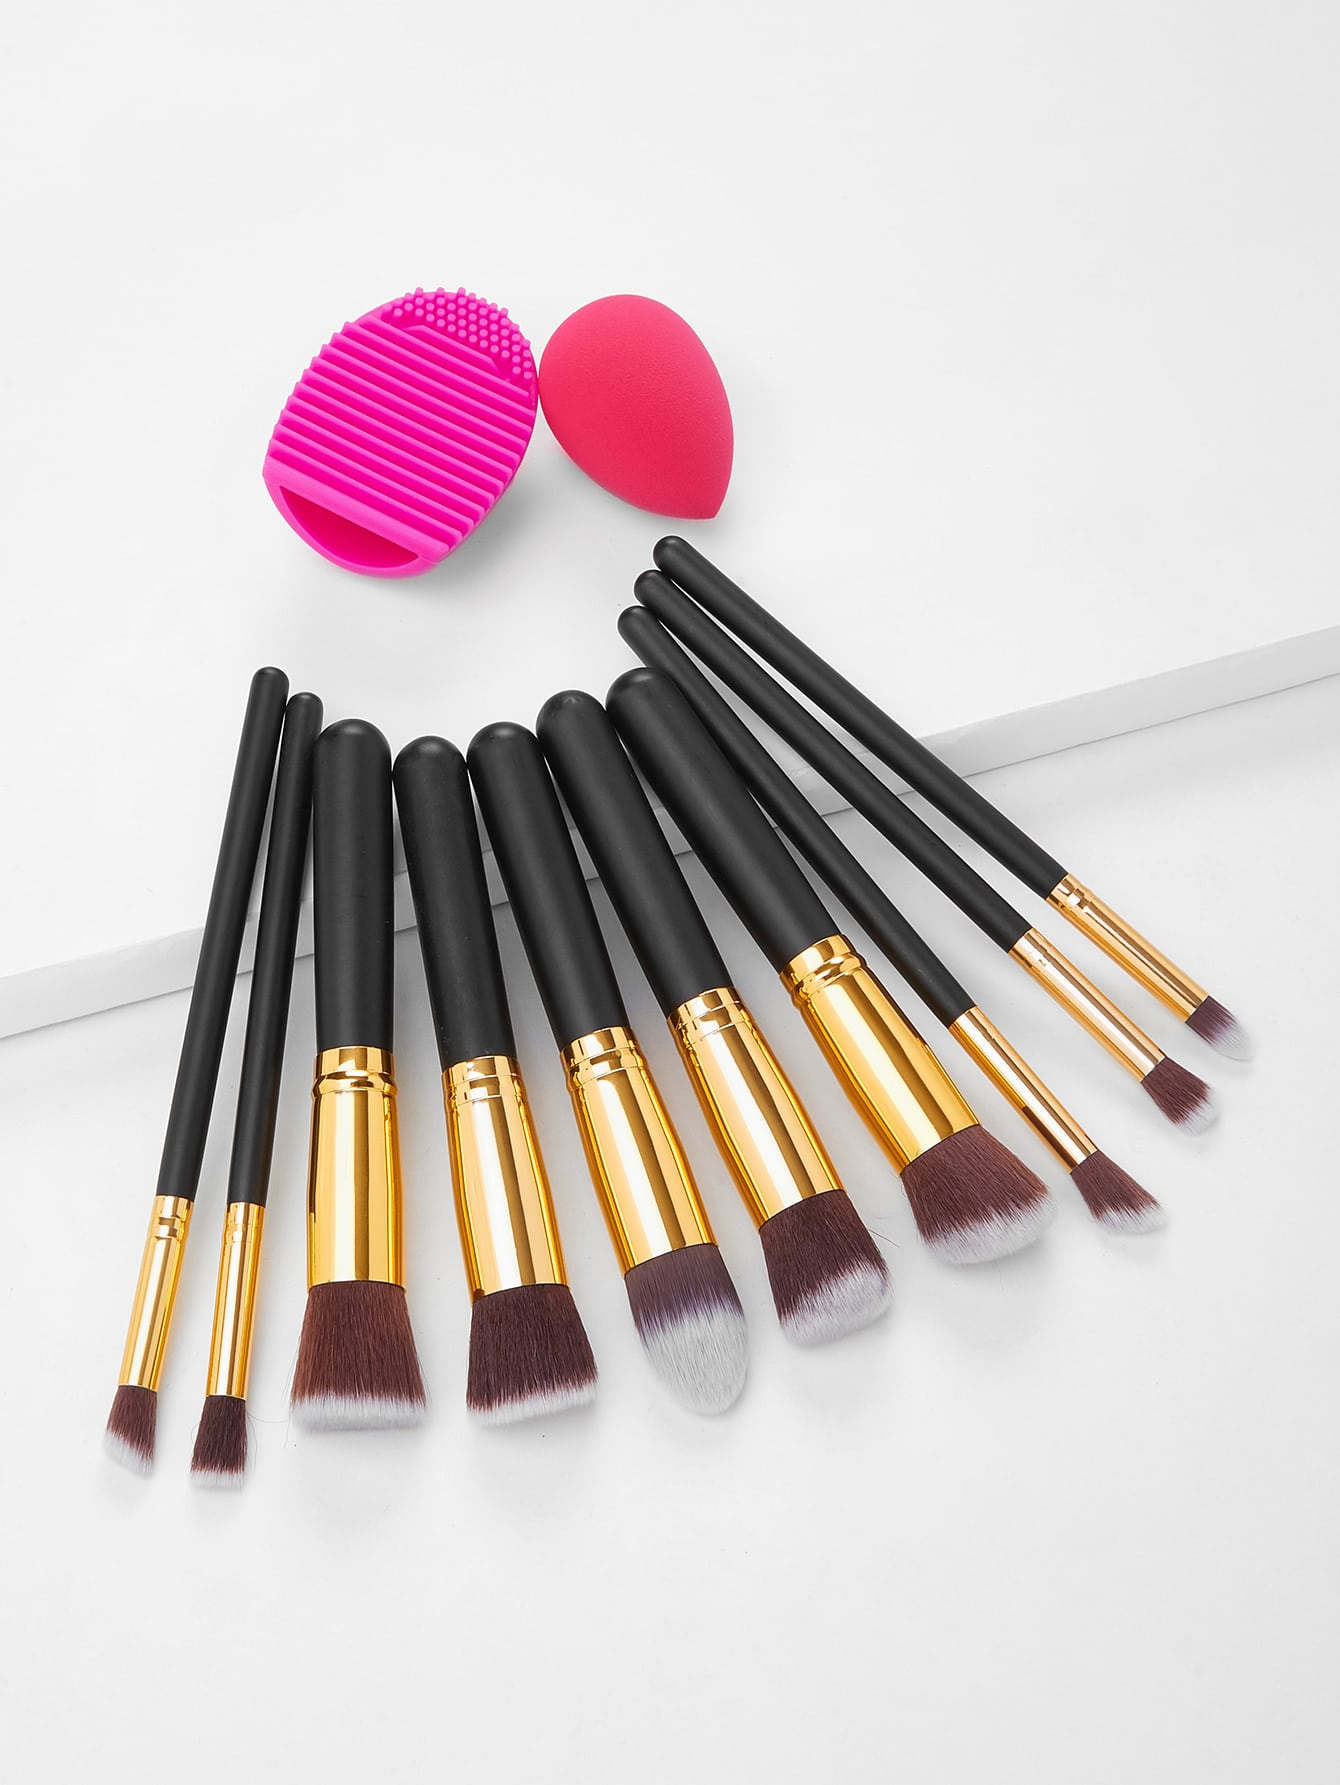 Black Cosmetic Makeup Brush Set With Blending Sponges 8pcs beauty makeup brushes set eyeshadow blending brush powder foundation eyebrow lip cosmetic make up tools pincel maquiagem